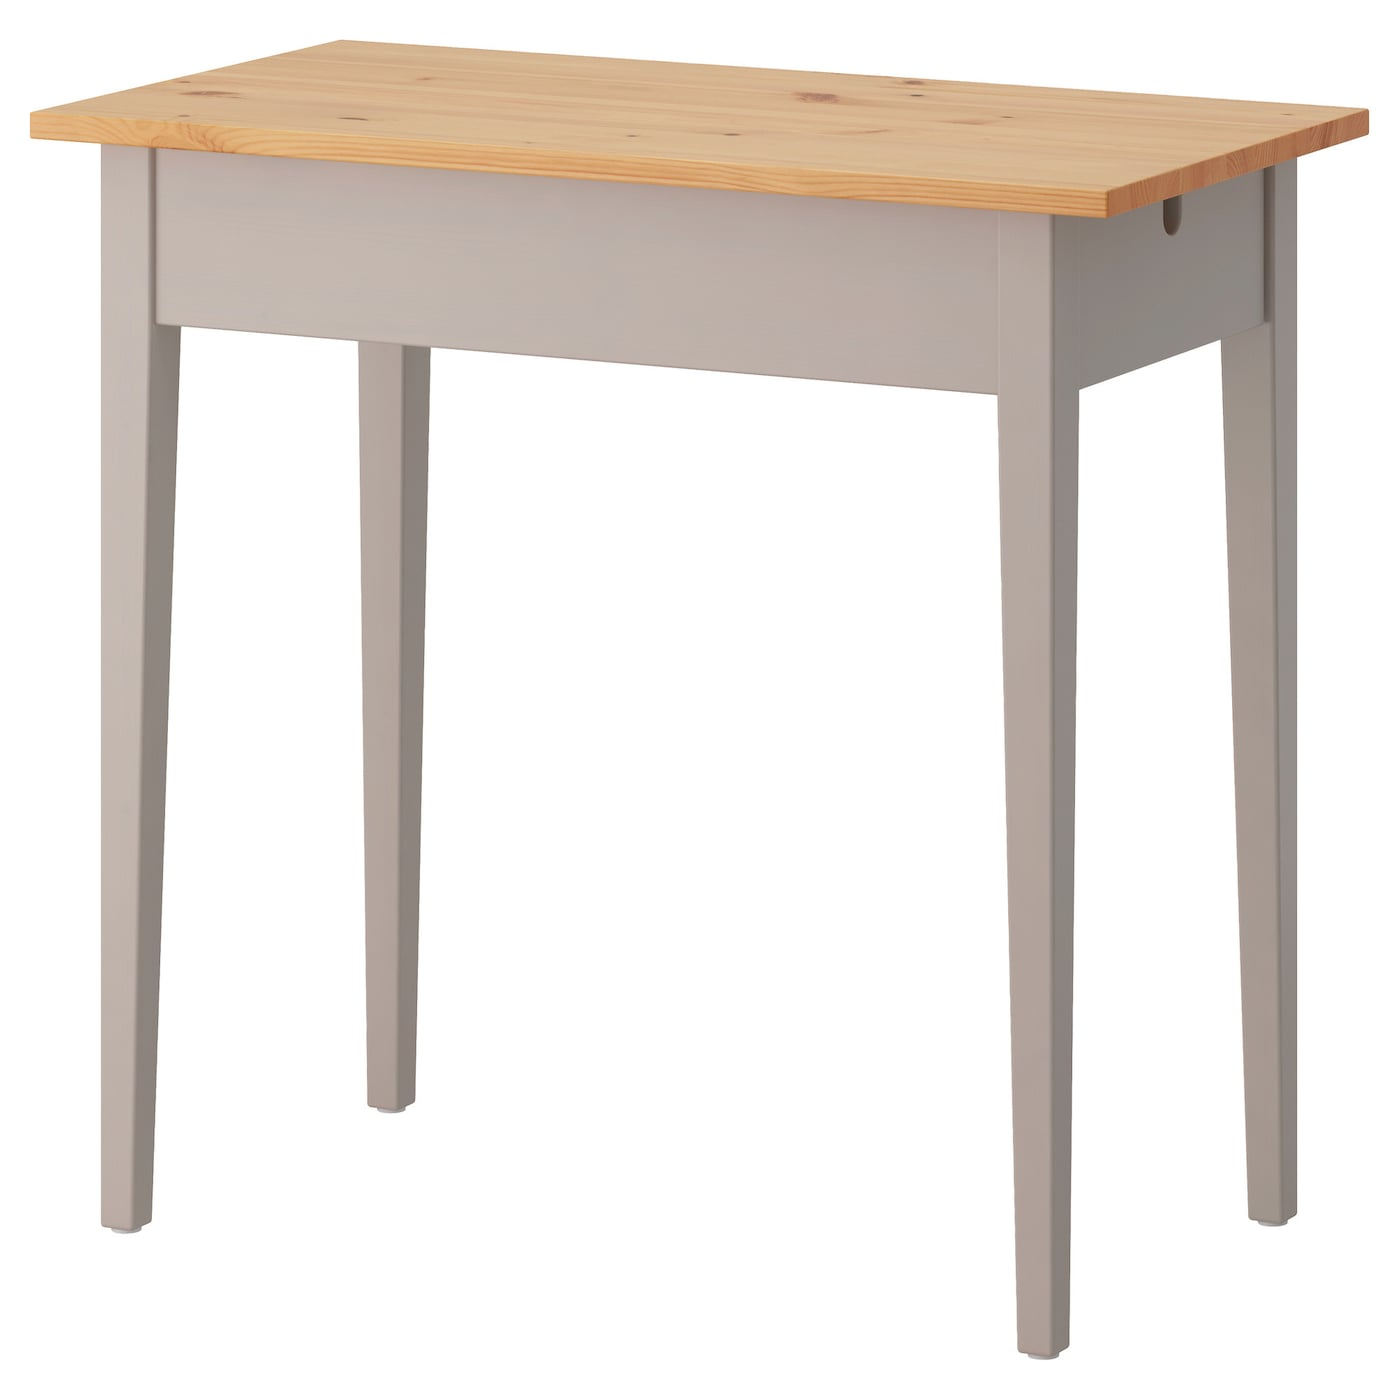 norr sen laptop table grey 79x40 cm ikea. Black Bedroom Furniture Sets. Home Design Ideas